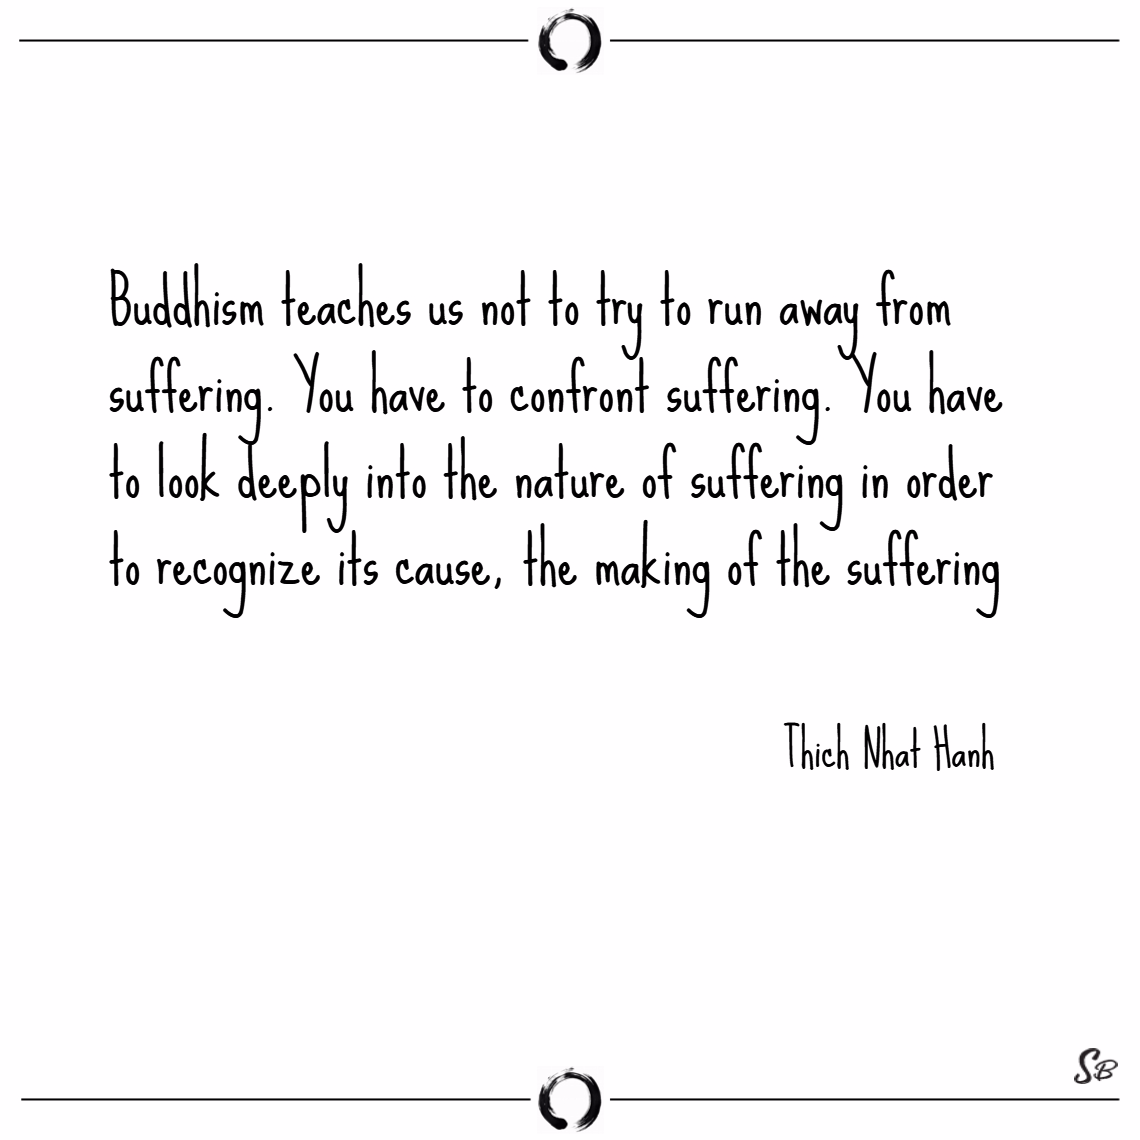 Buddhism teaches us not to try to run away from suffering. you have to confront suffering.